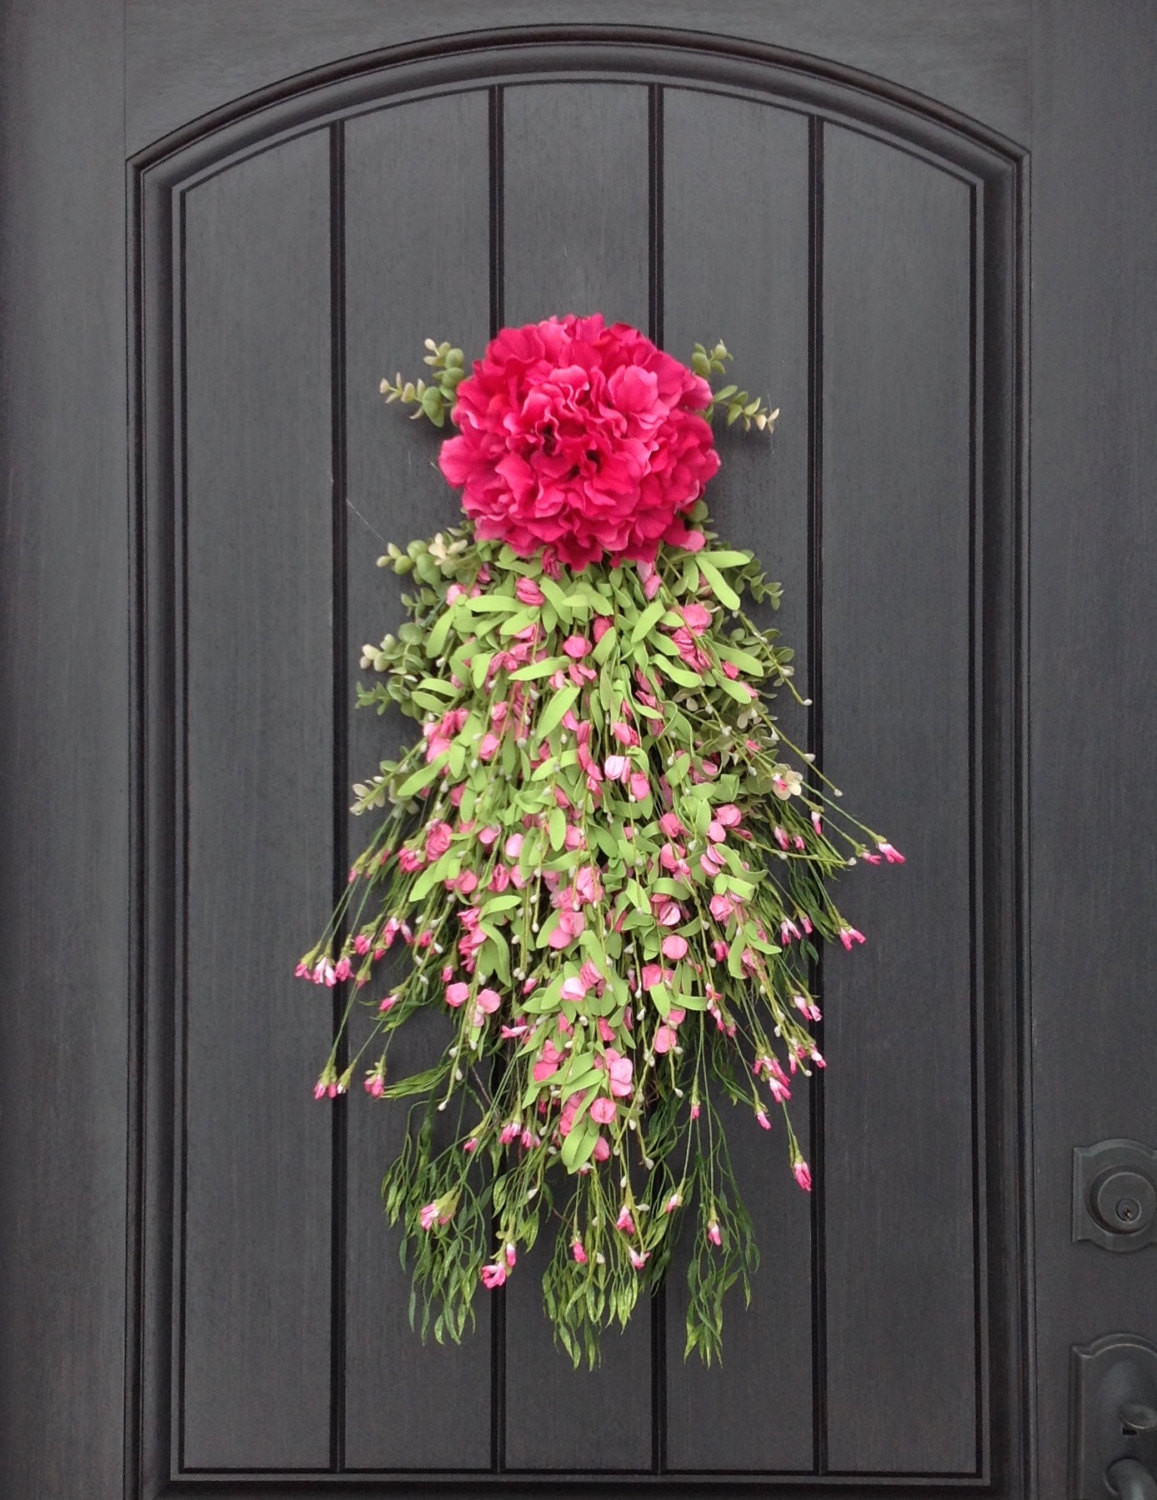 Unique Door Decoration 15 Joyful Handmade Spring Wreath Ideas to Decorate Your